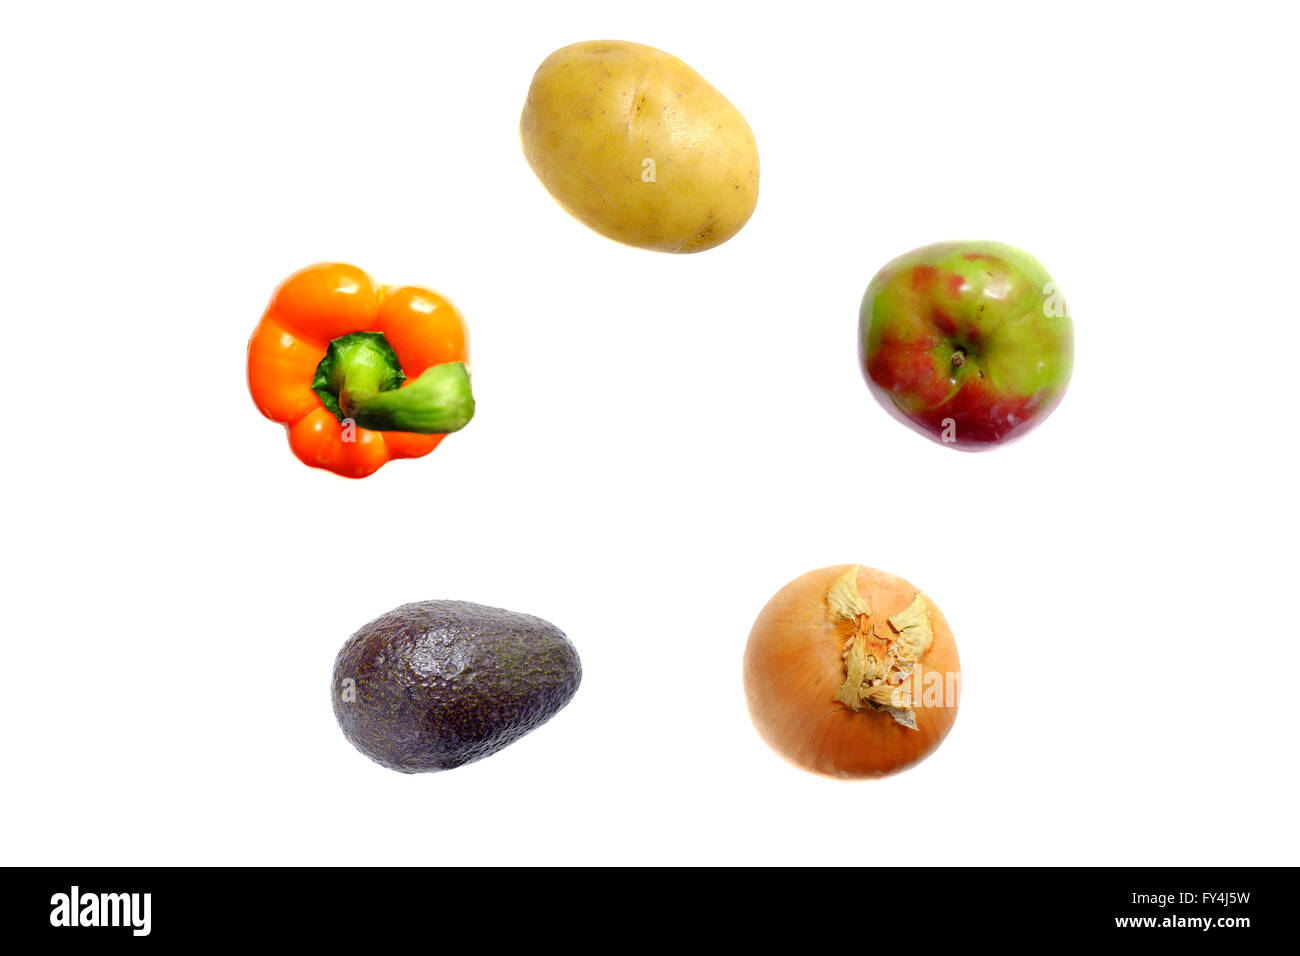 The British recommended dietary allowance of 5 fruit and vegetables photographed against a white background. - Stock Image